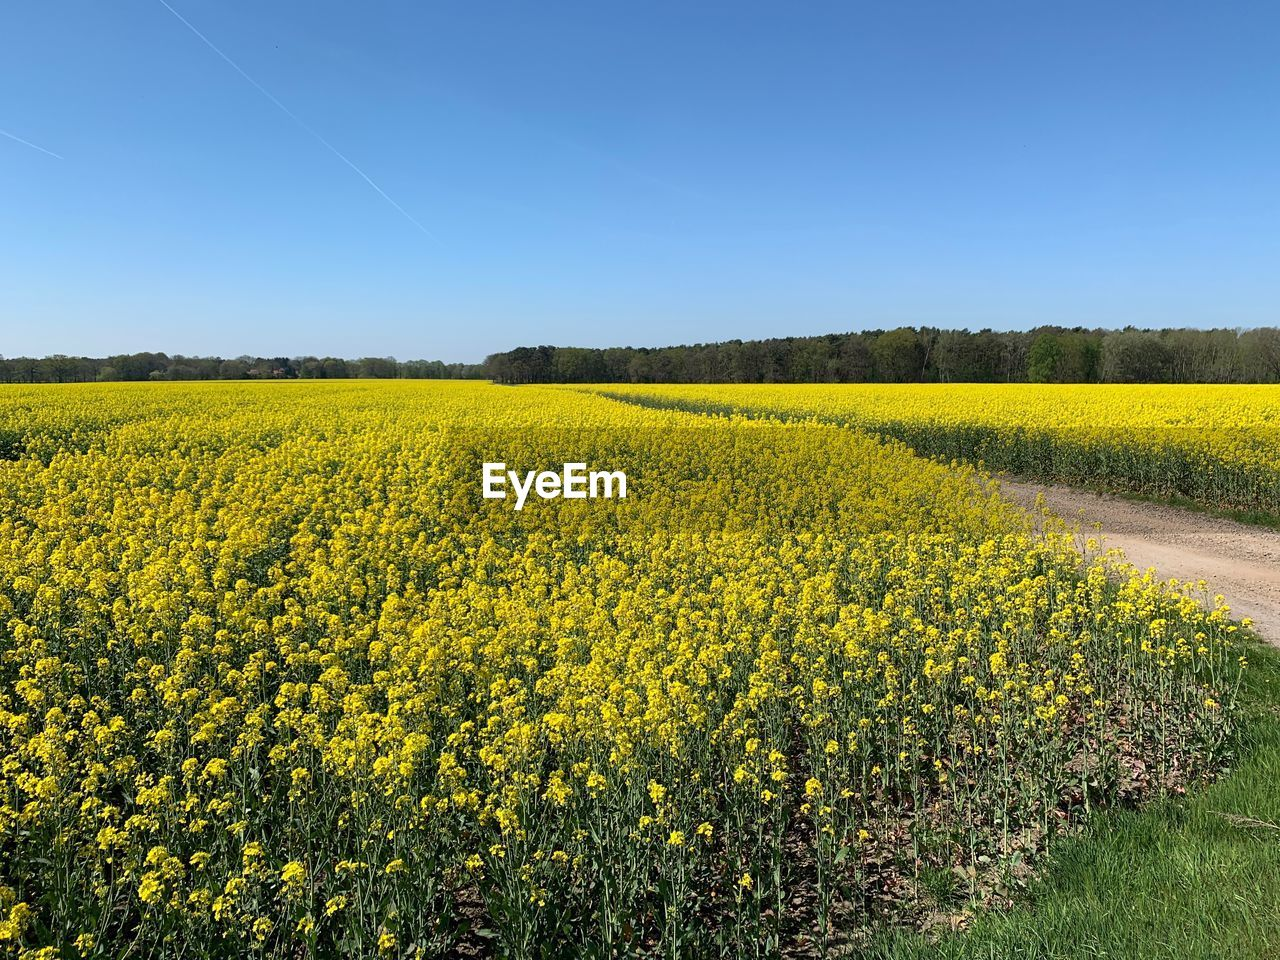 yellow, beauty in nature, field, landscape, sky, plant, scenics - nature, land, flower, tranquil scene, growth, agriculture, environment, rural scene, flowering plant, tranquility, oilseed rape, nature, clear sky, crop, no people, springtime